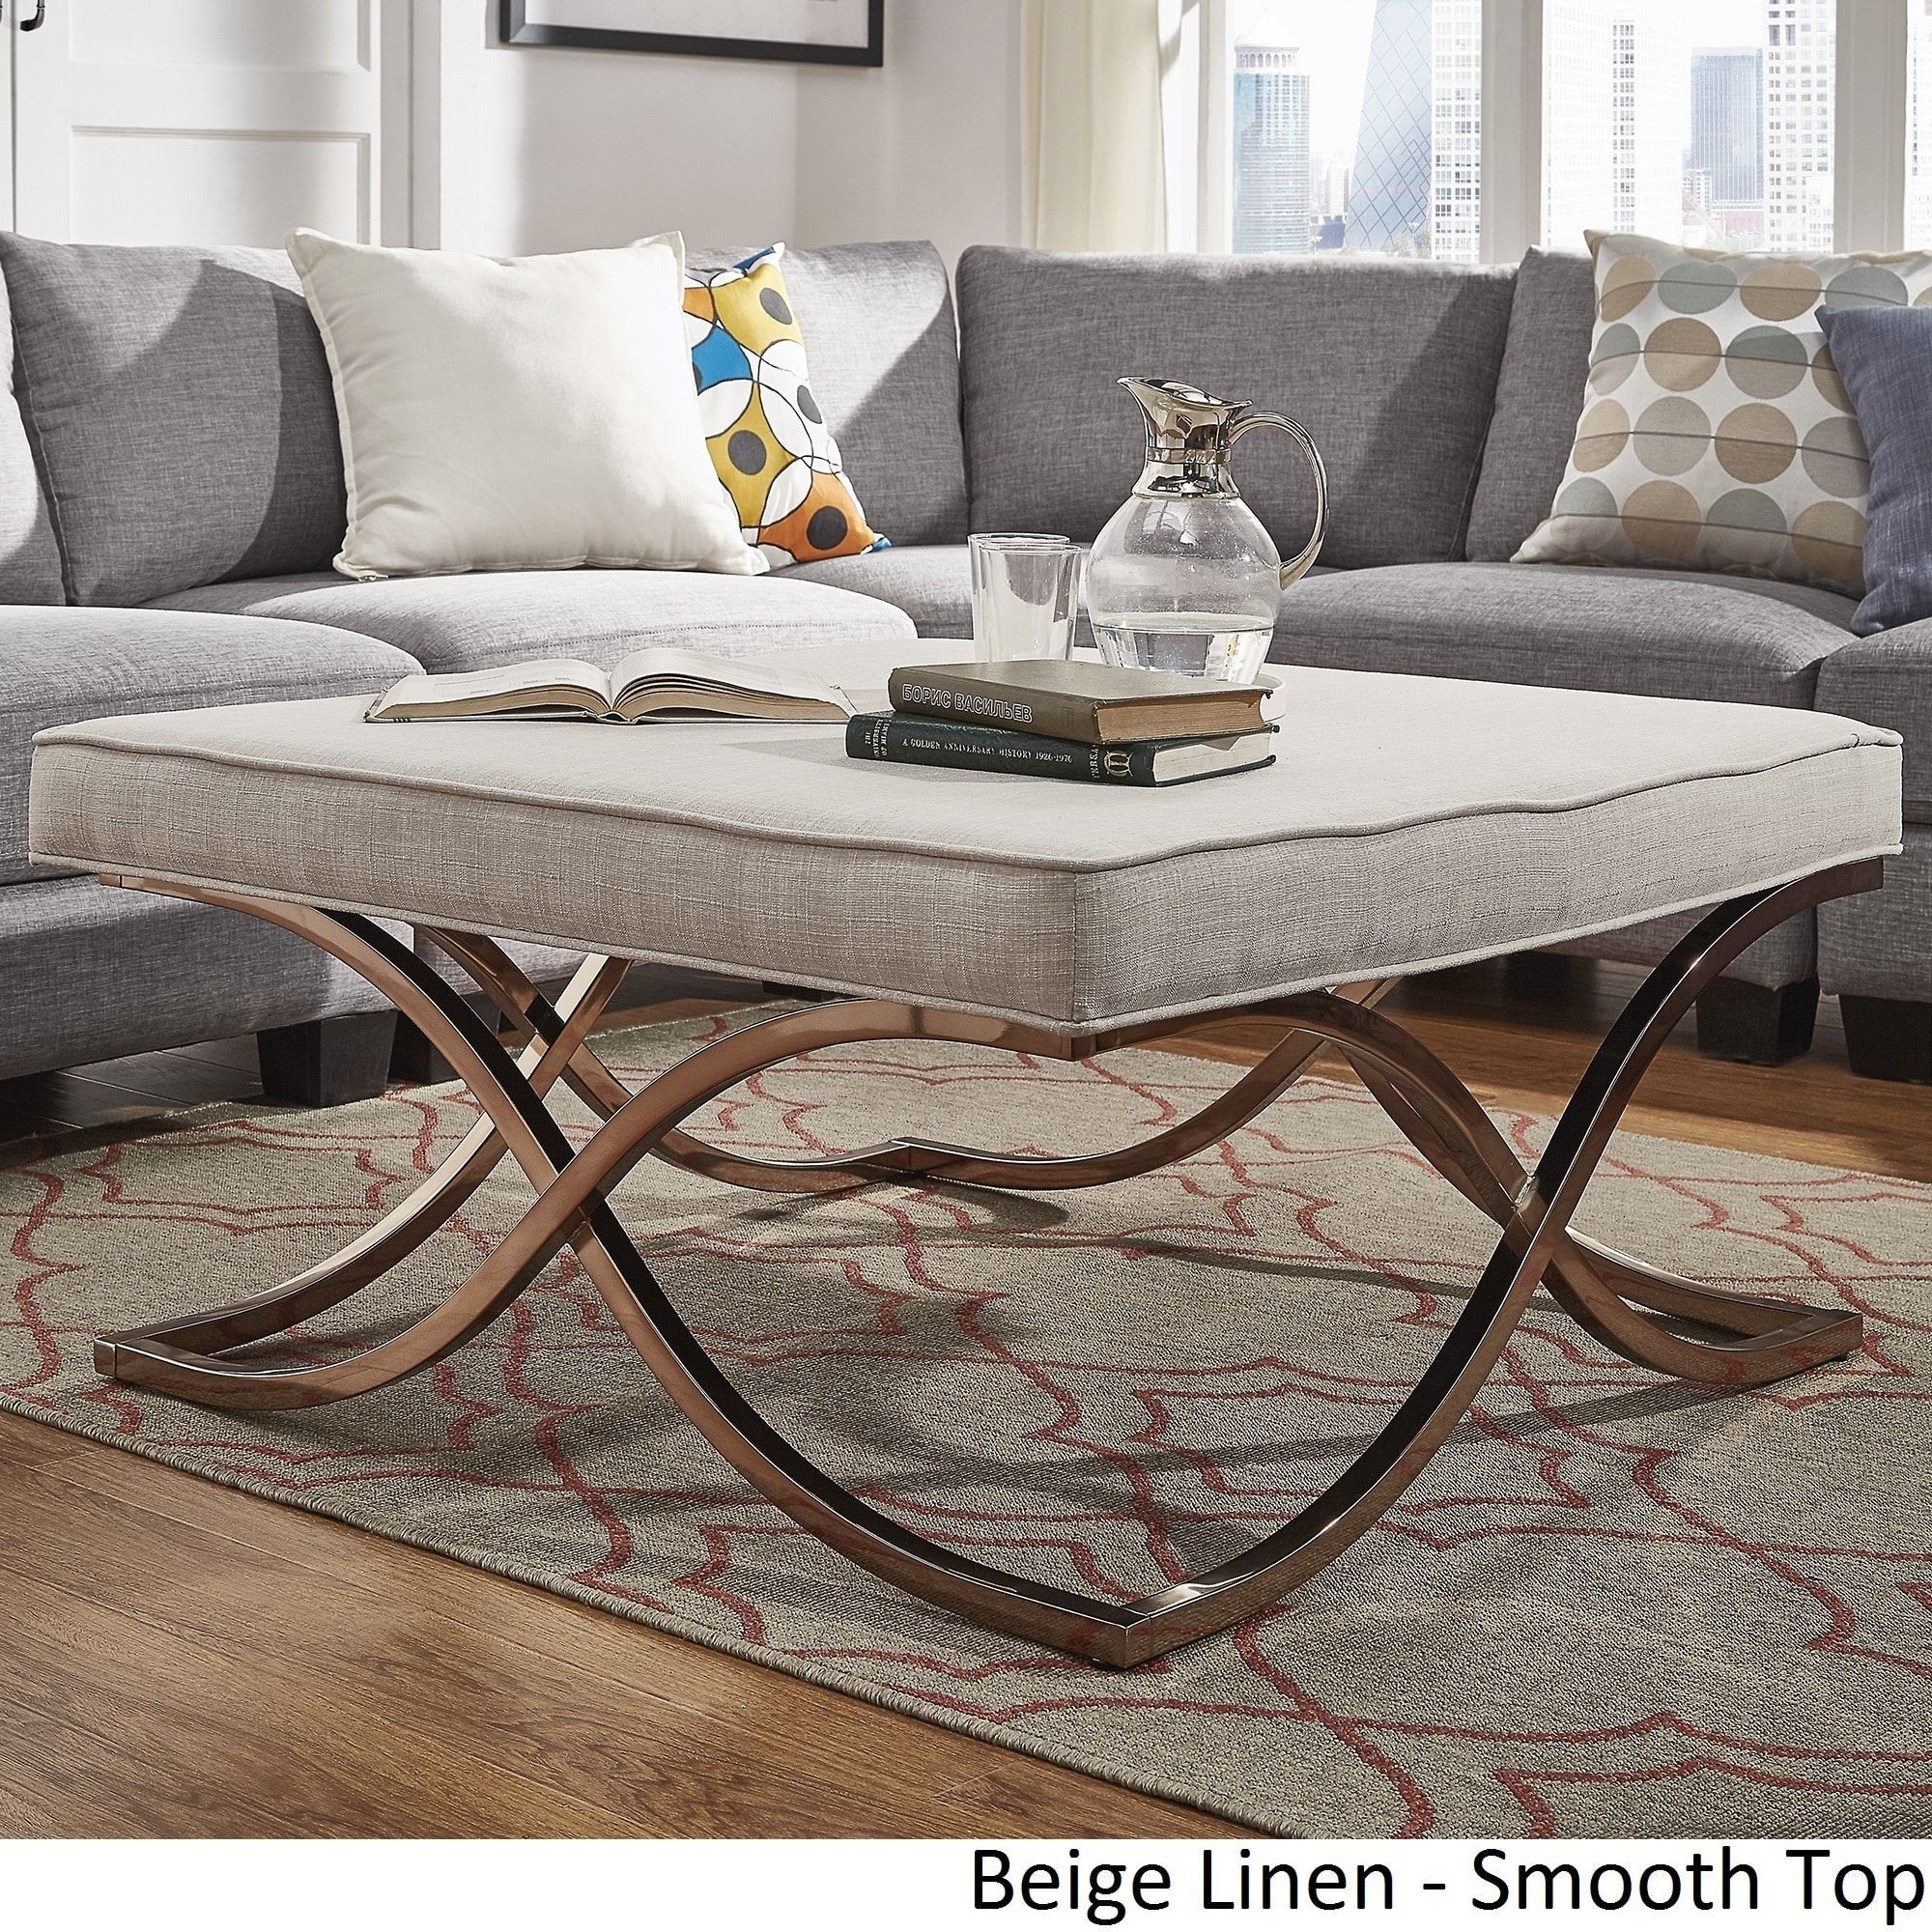 Solene X Base Square Ottoman Coffee Table - Champagne Gold by iNSPIRE Q  Bold ([